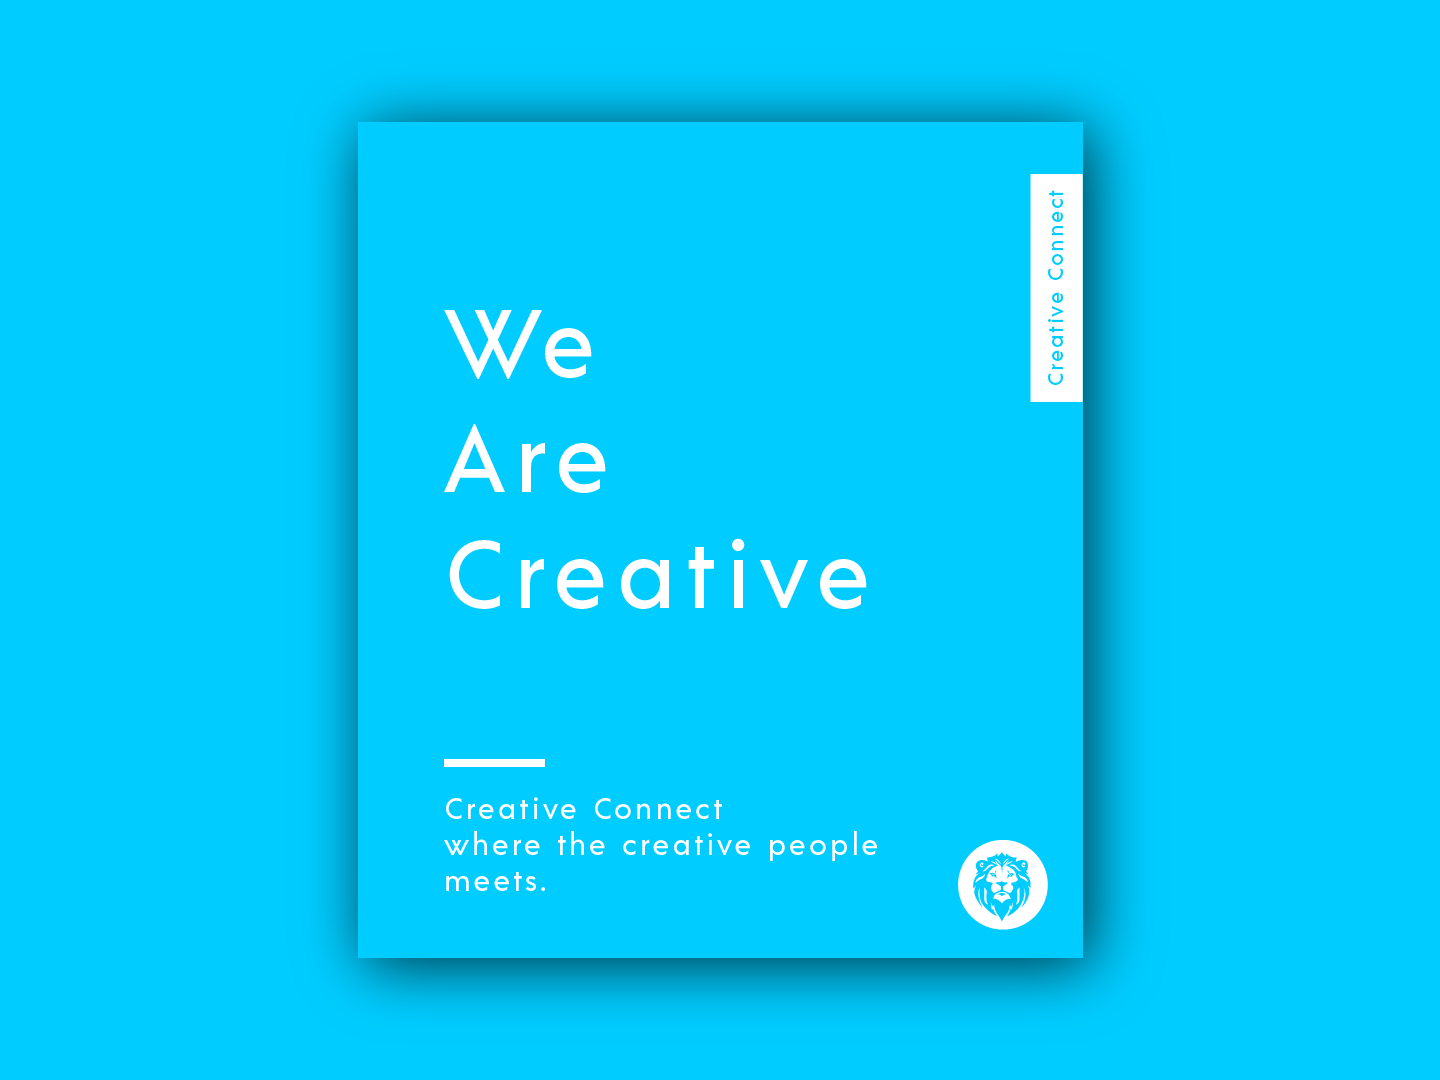 Creative Connect user login black  white blue colors color lettering icon type typography animation website logo vector creative connect illustration branding web design dailyui creative